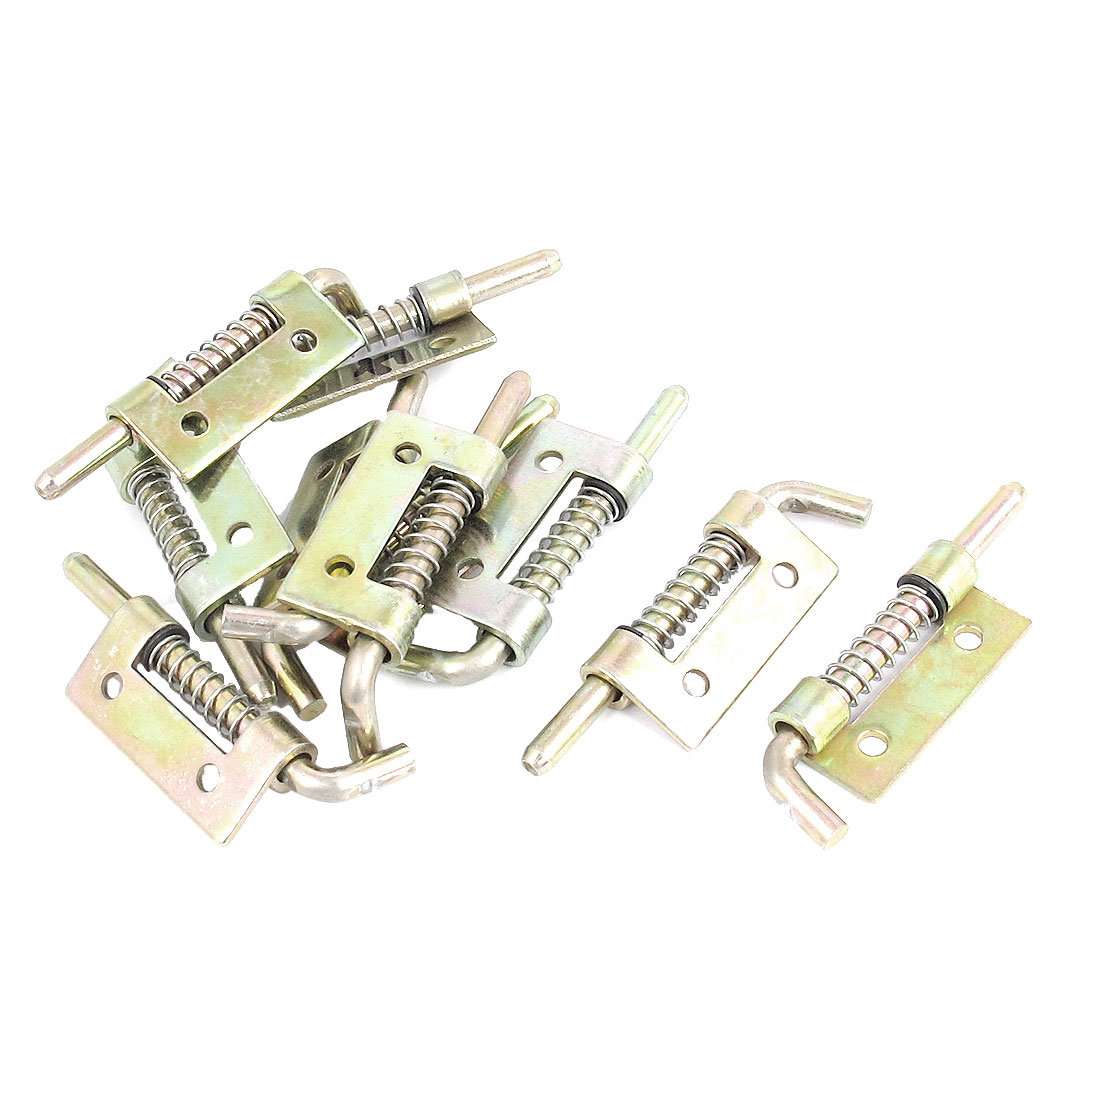 10pcs Cabinet Door Hinges Spring Loaded Metal Left Barrel Bolt Latch 55mm Long